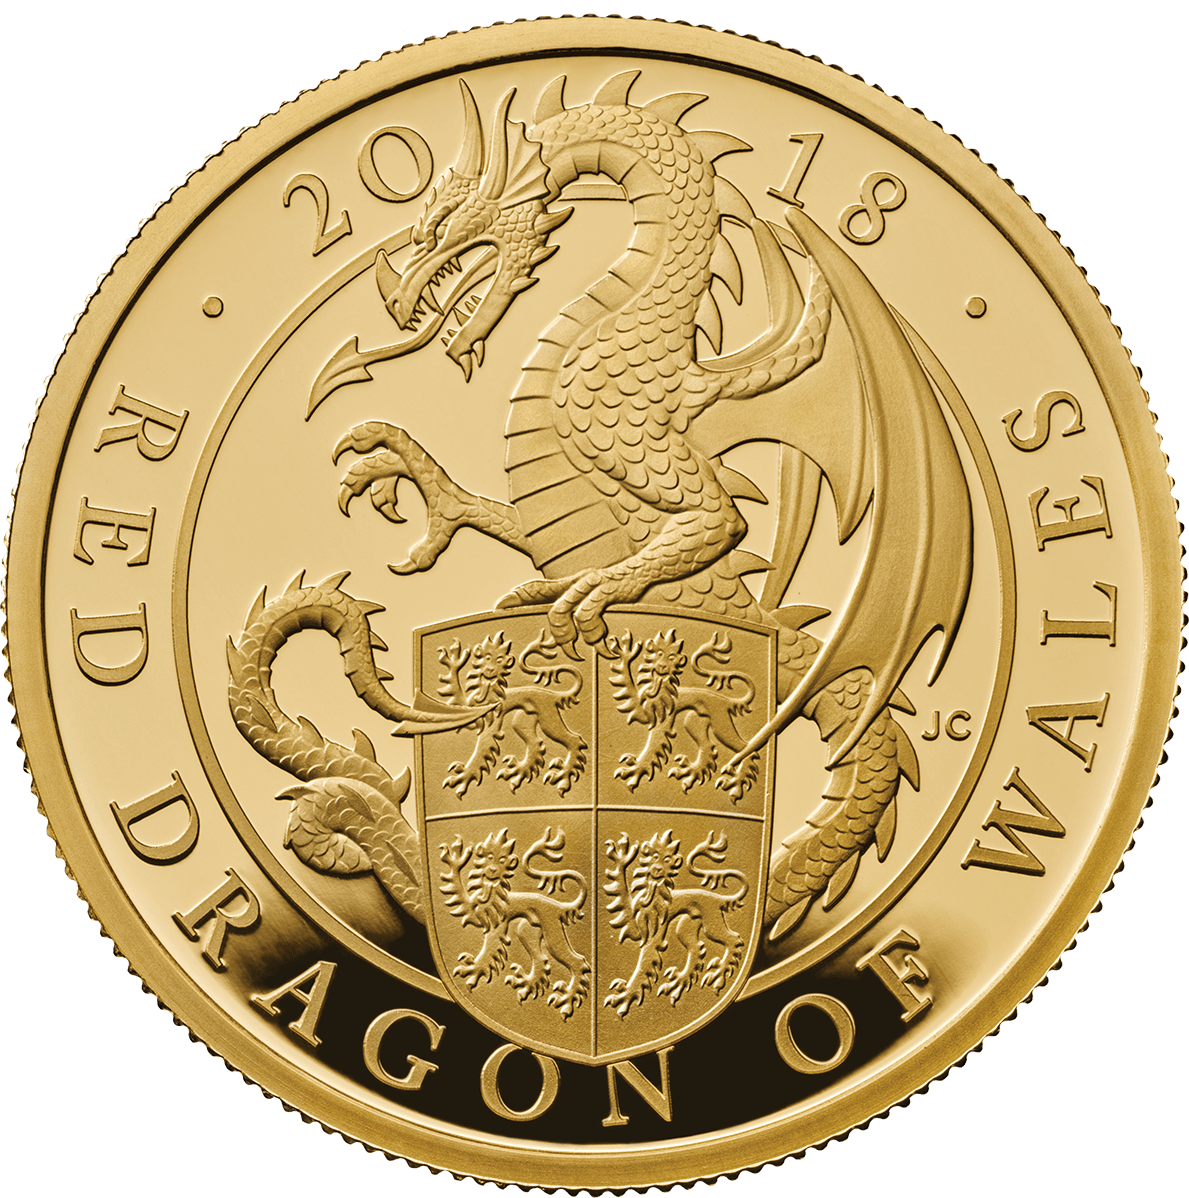 Coins clipart coin uk. The queen s beast